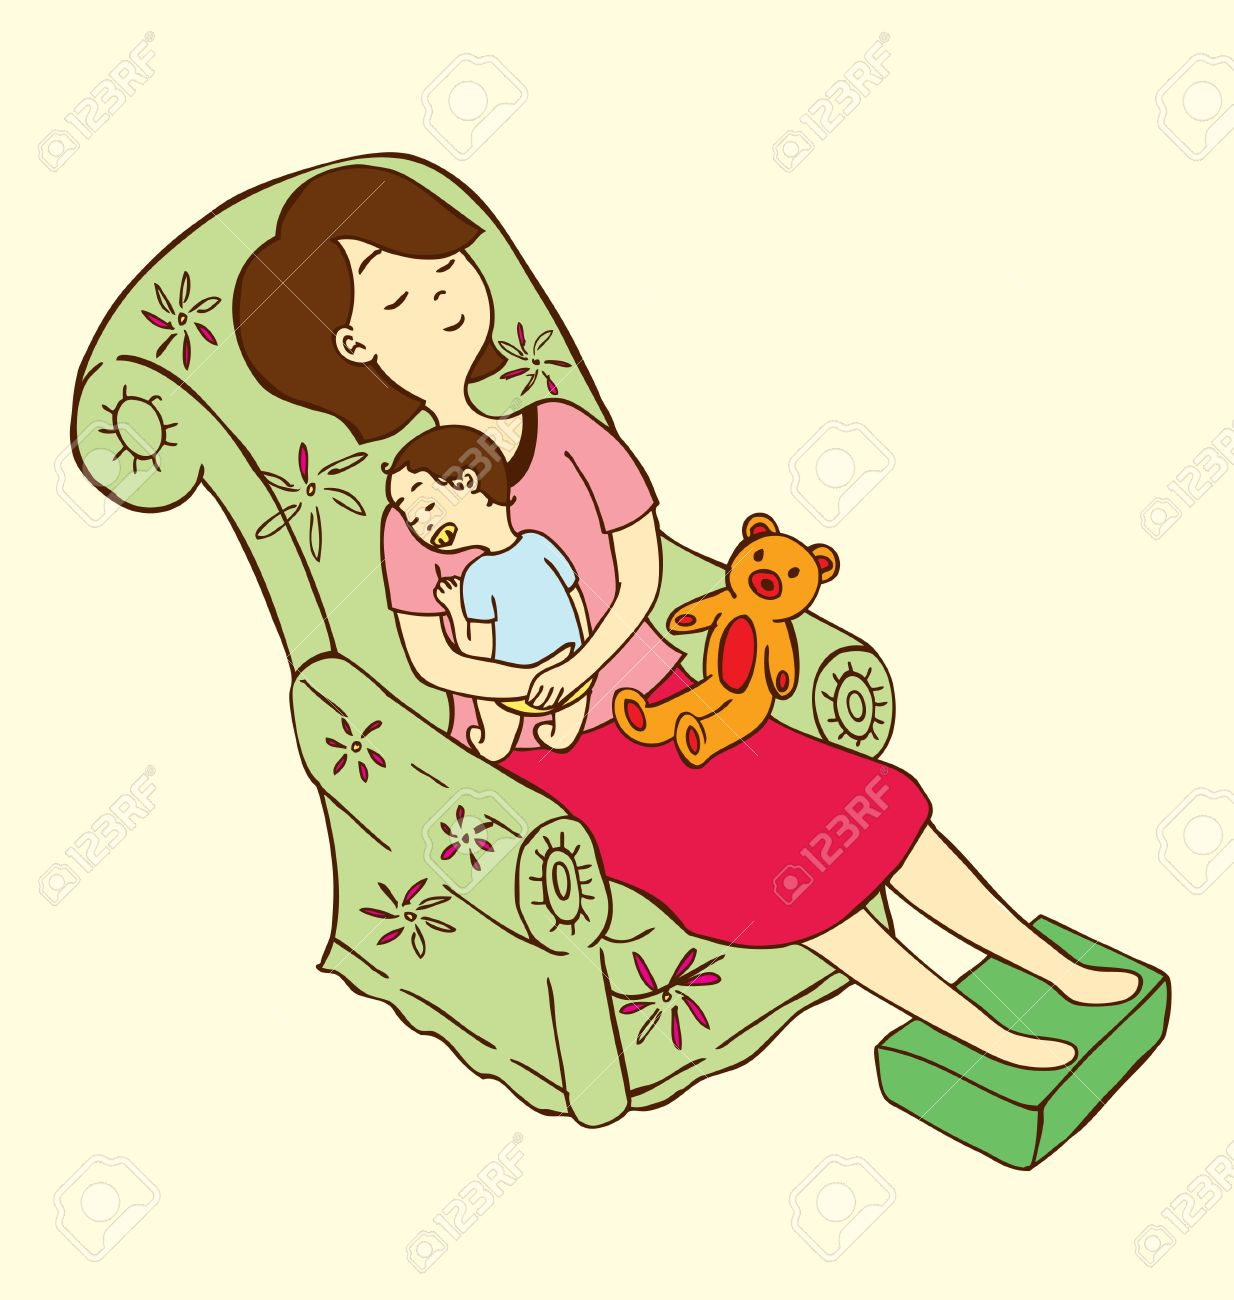 A mother put her baby to sleep in a sofa with a doll on her lap. Stock Vector - 6331261